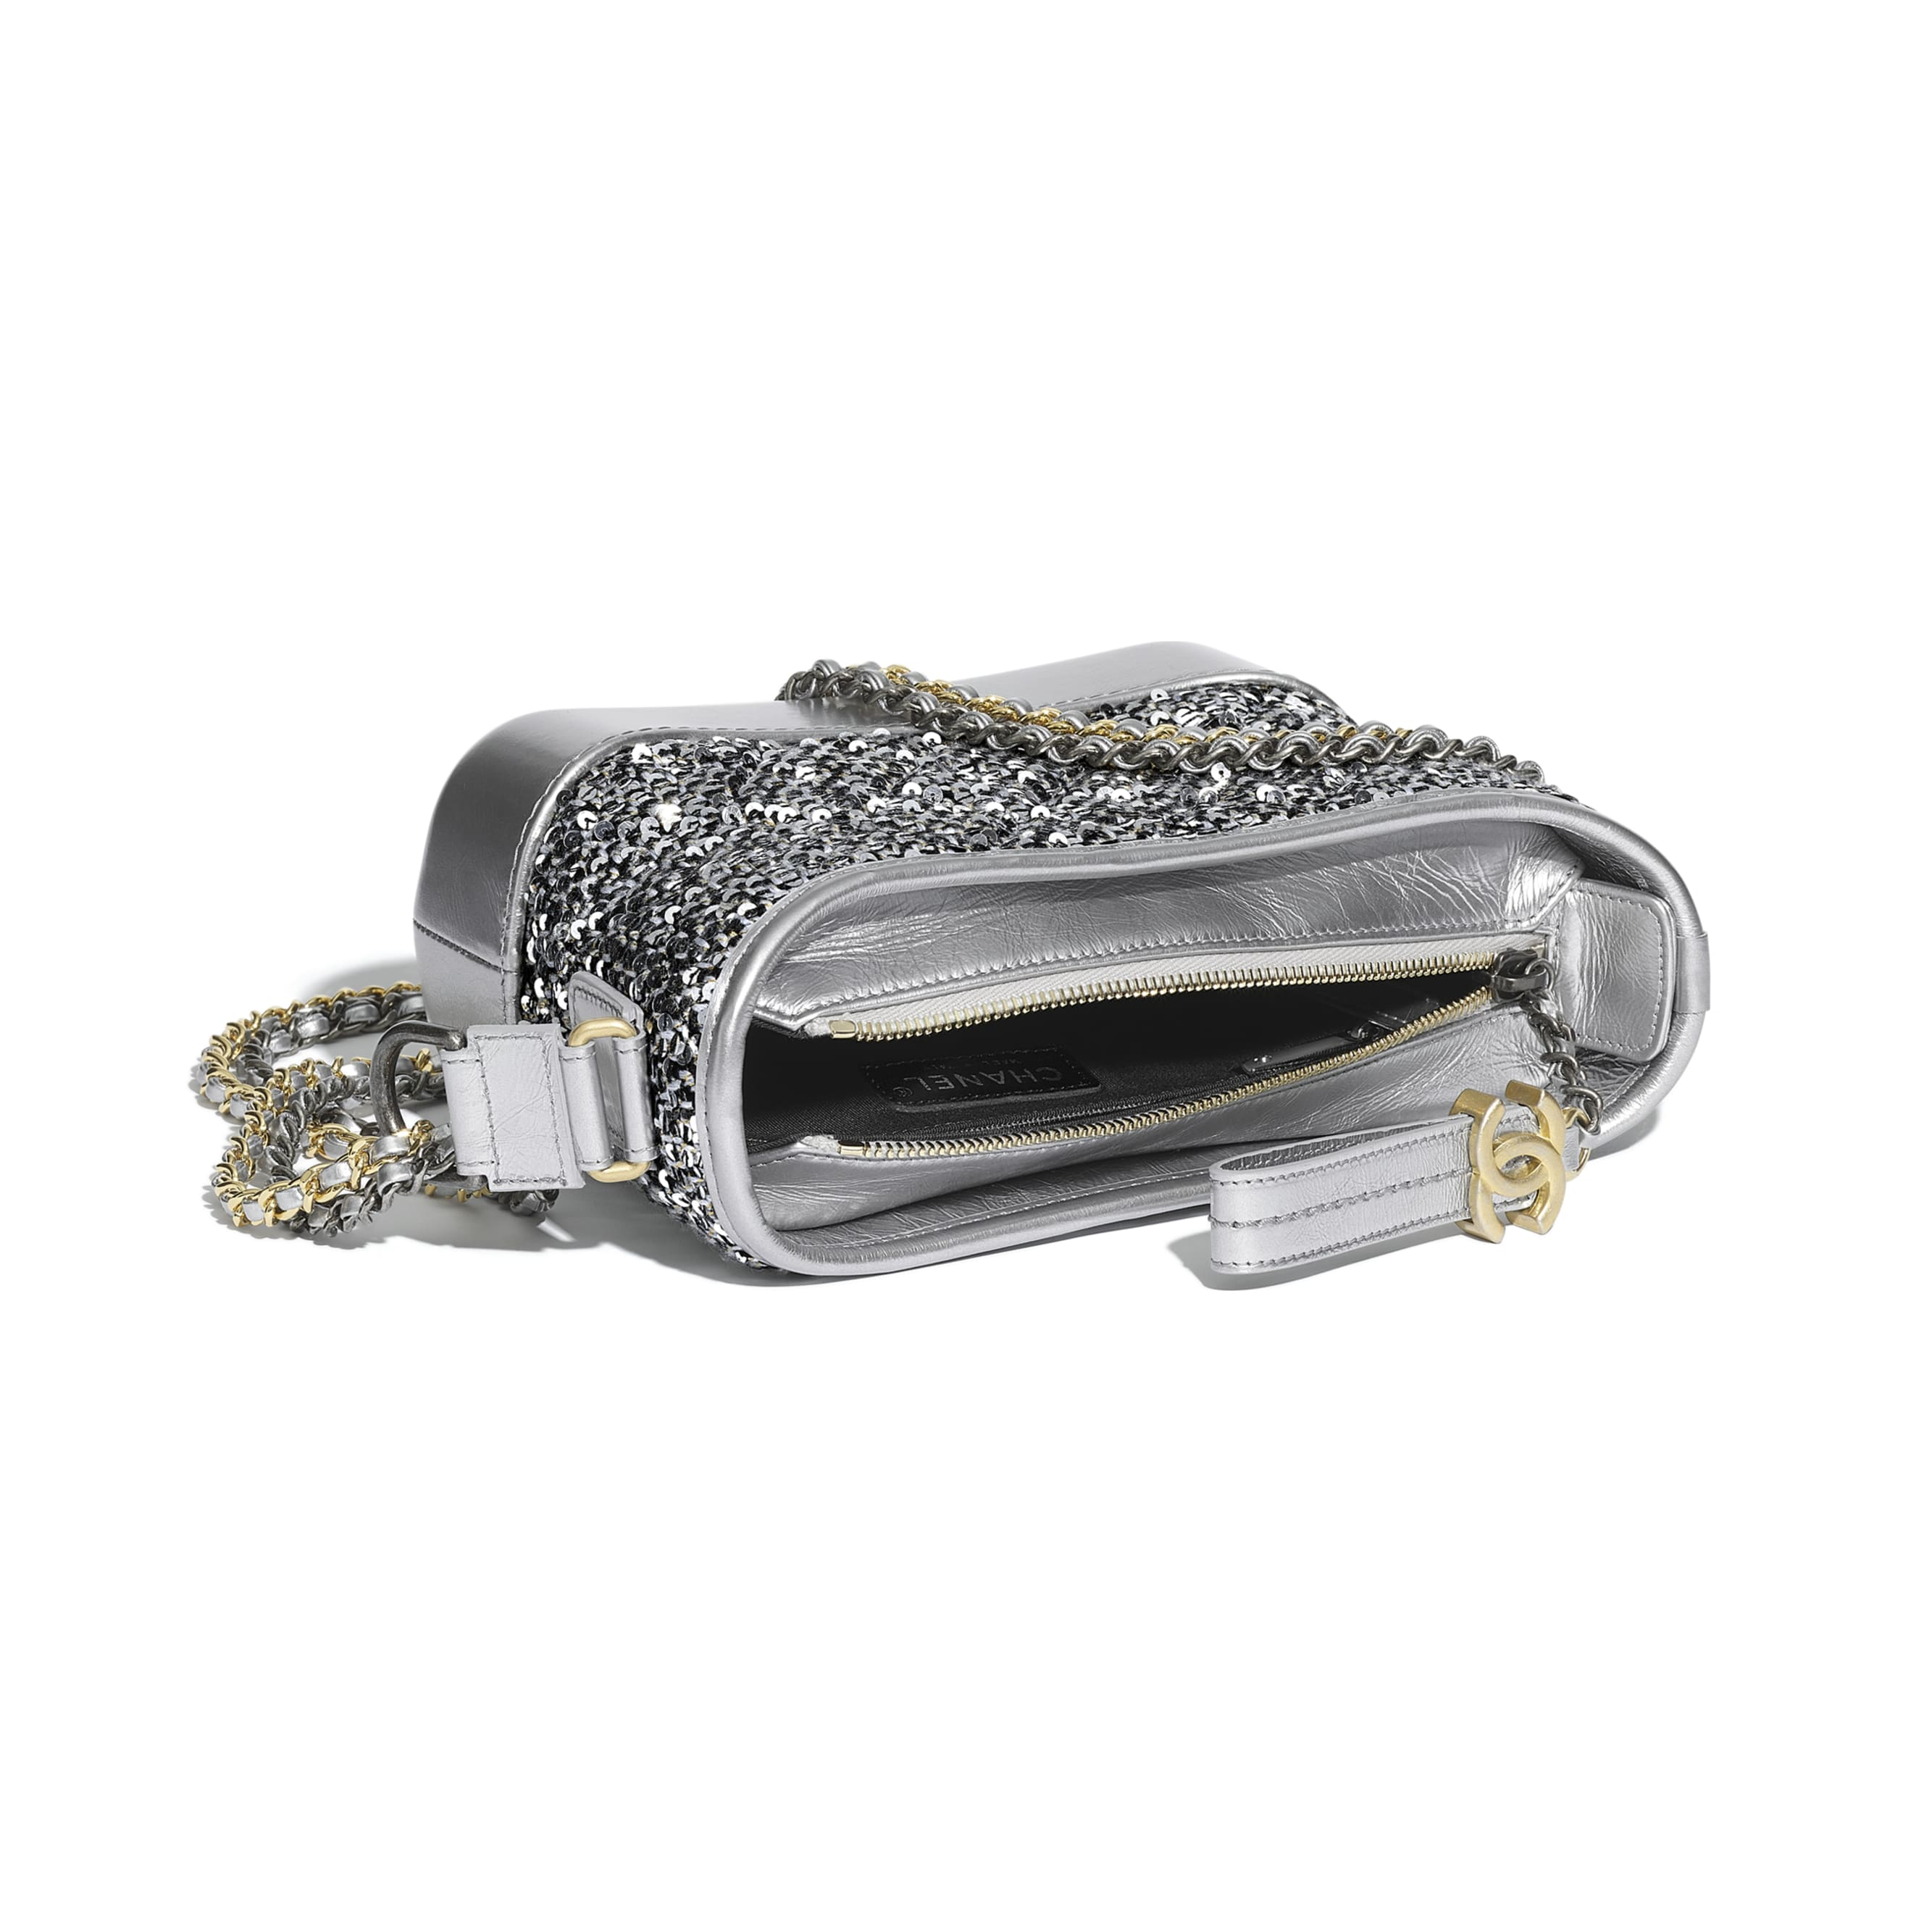 CHANEL'S GABRIELLE Small Hobo Bag - Silver, Black & Gold - Tweed, Sequins, Calfskin, Gold-Tone, Silver-Tone & Ruthenium-Finish Metal - CHANEL - Other view - see standard sized version